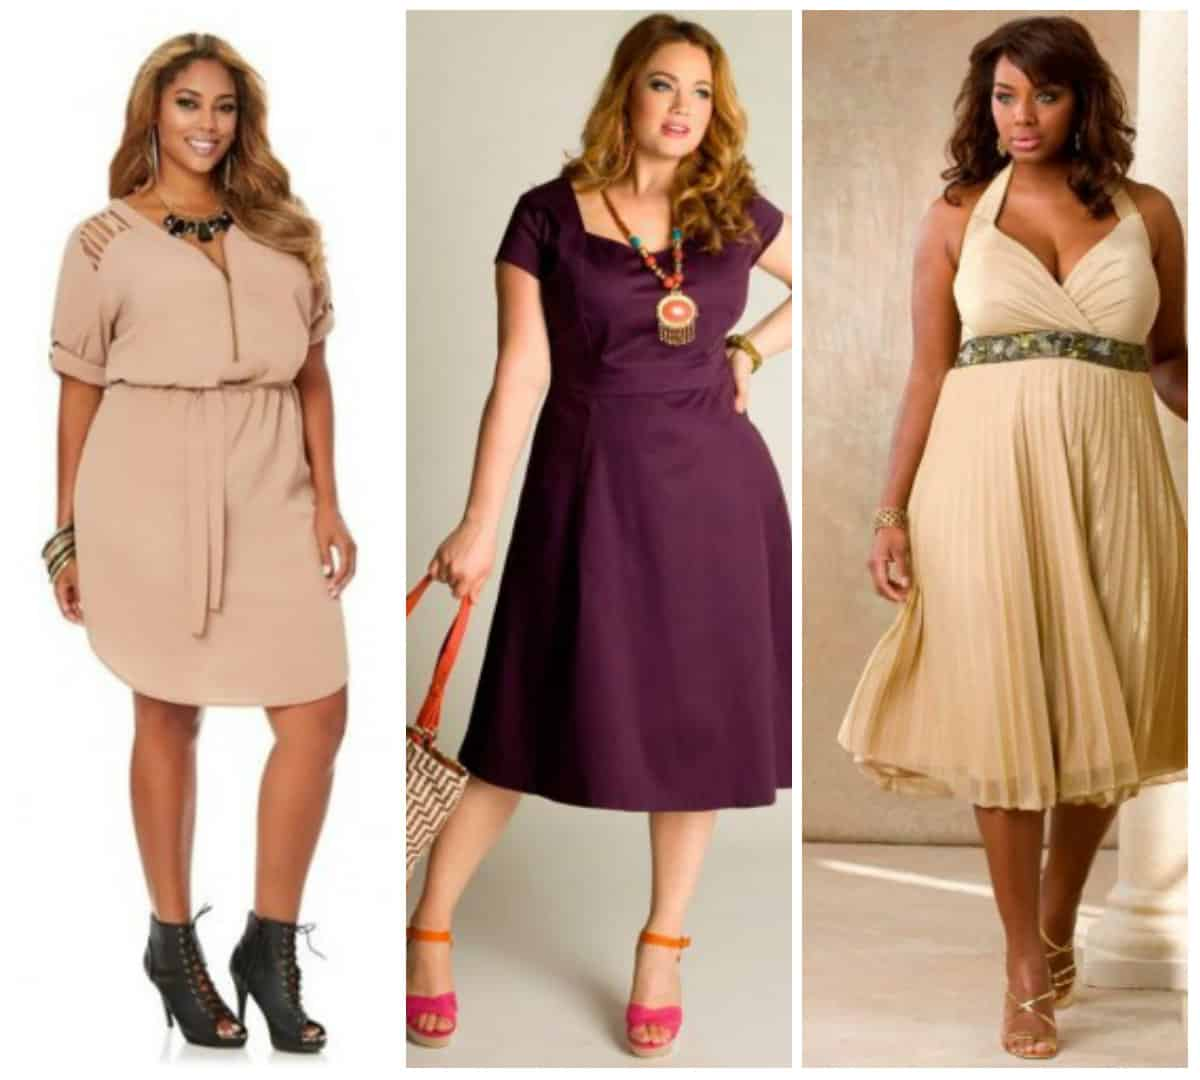 Women\'s plus size clothing trends Spring Summer 2016